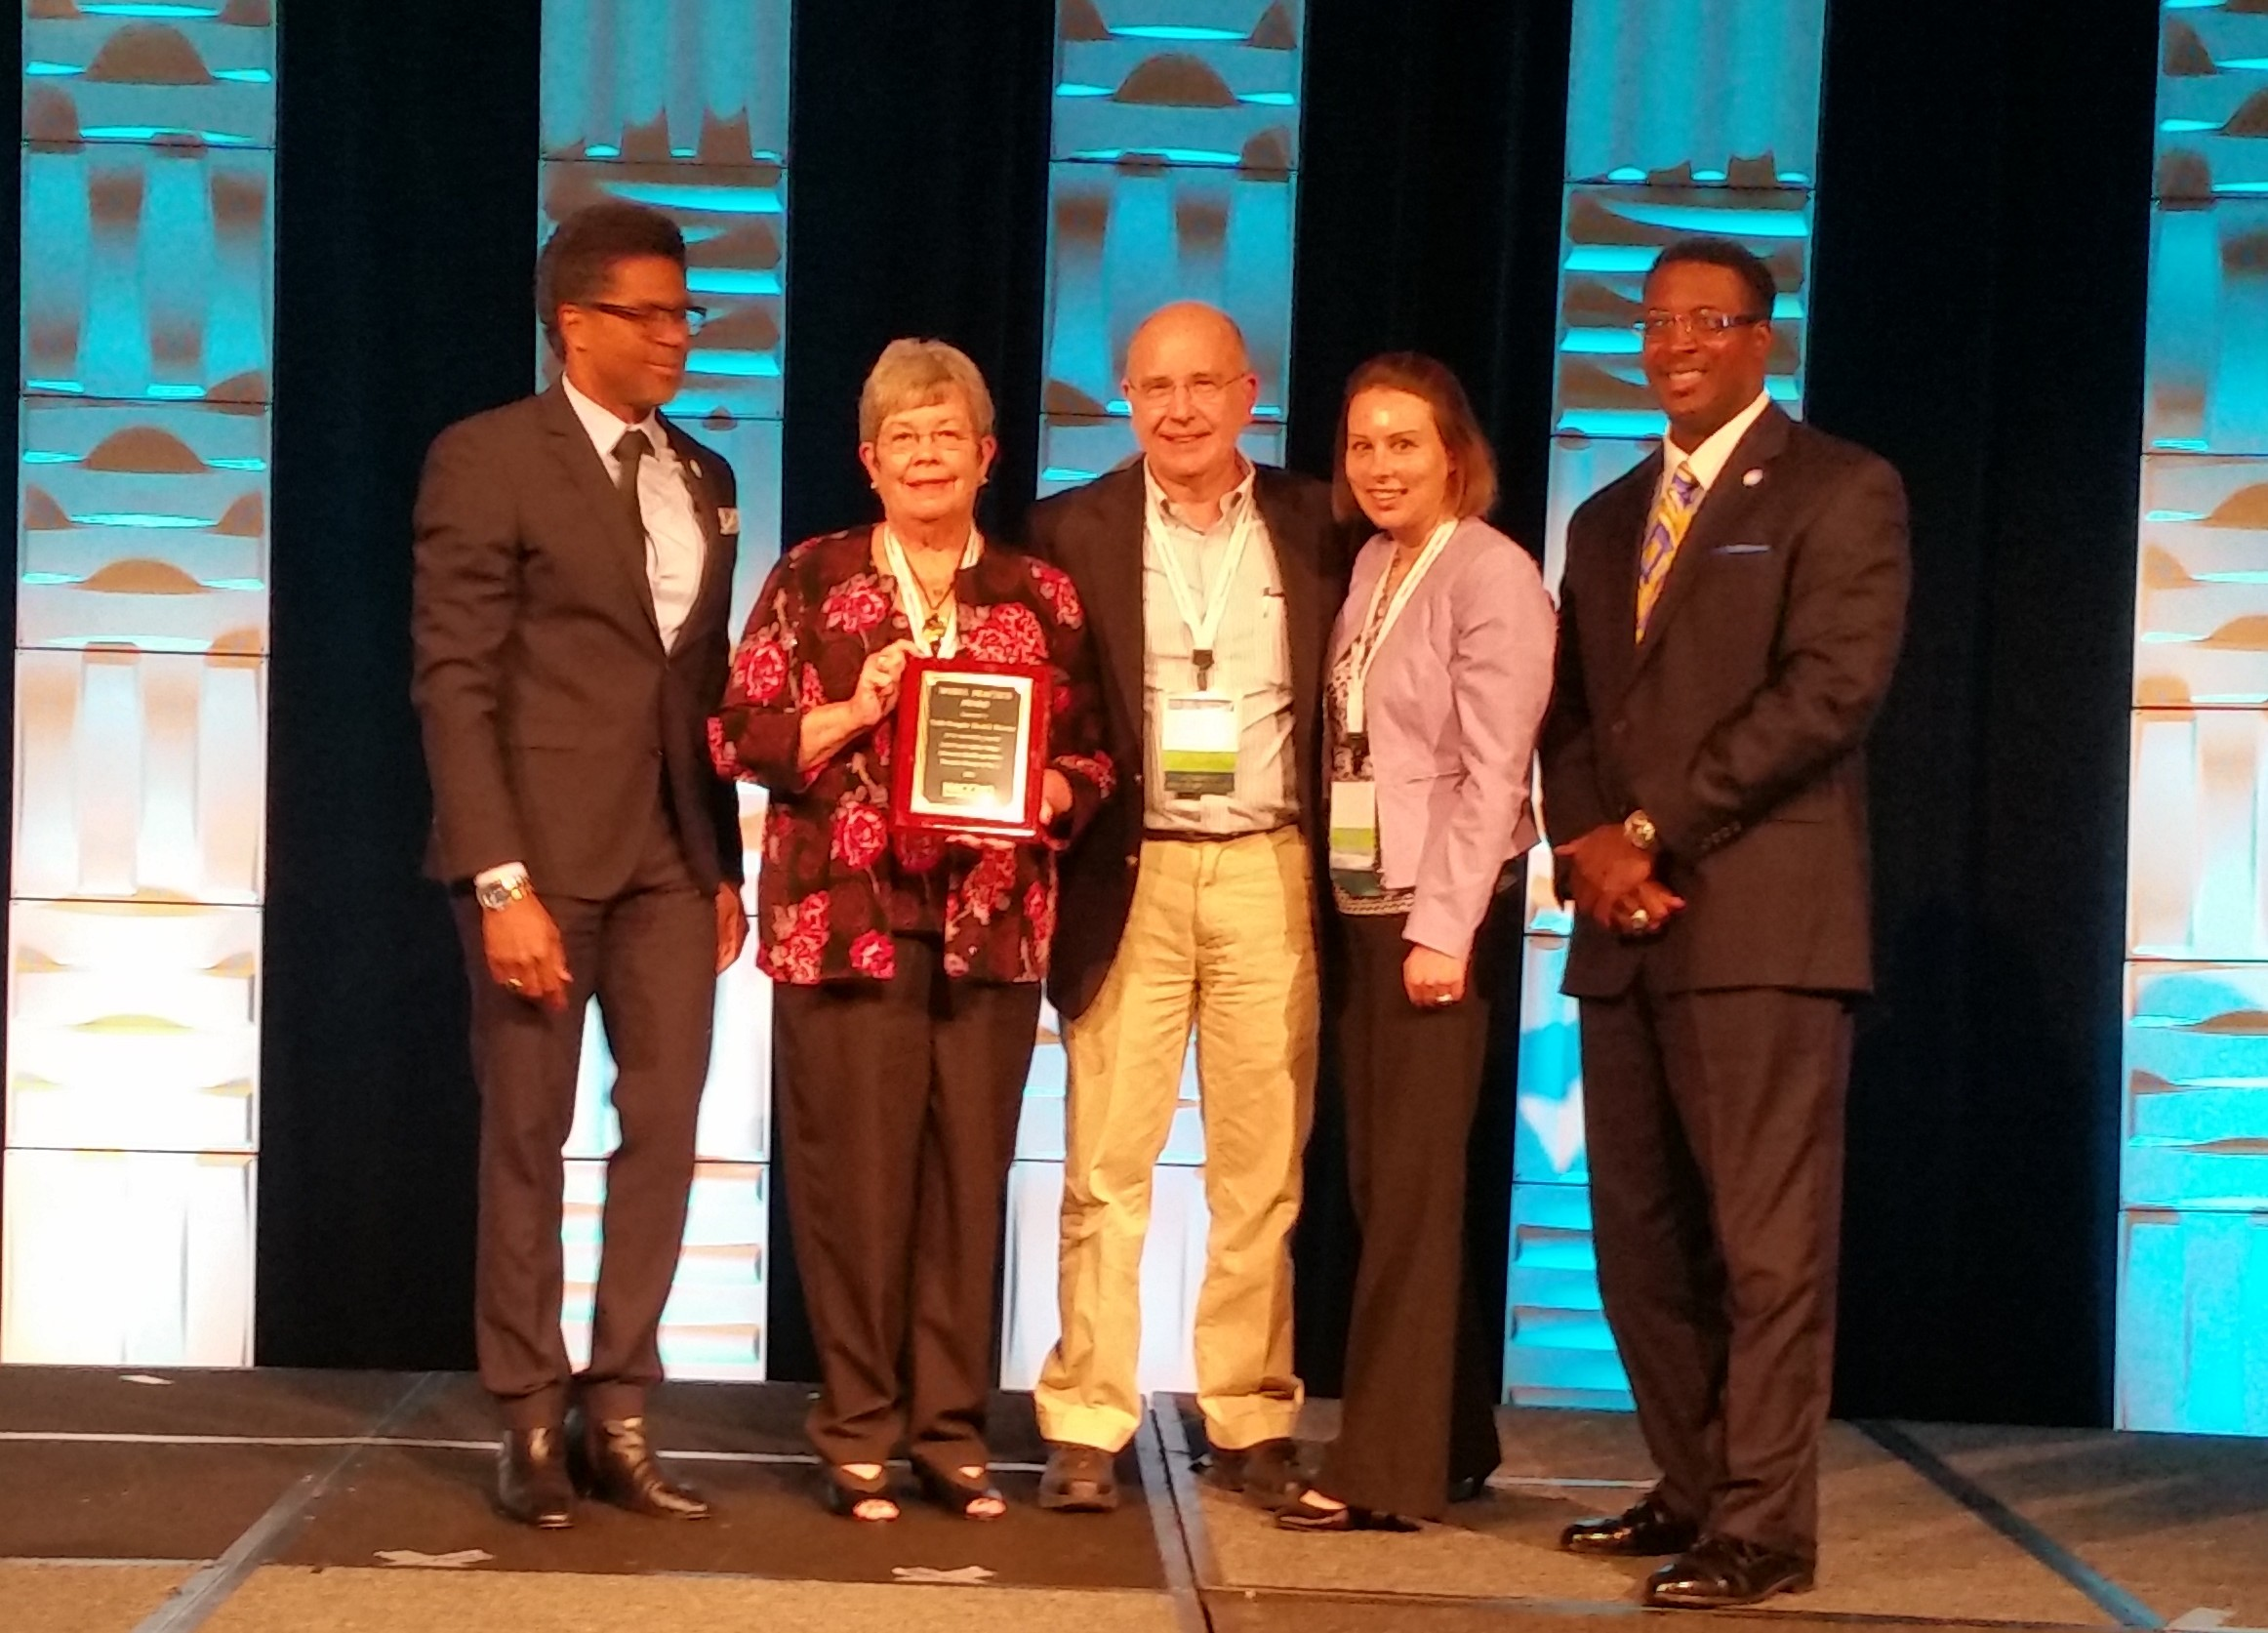 Accepting the Model Practice Award on July 8 (from L to R) Dr. LaMar Hasbrouck, NACCHO Executive Director, Pam Blackwell (CDPH), Dr. Jack Kennedy (CDPH), Emily Frantz (CDPH) and Dr. Swannie Jett, NACCHO President.